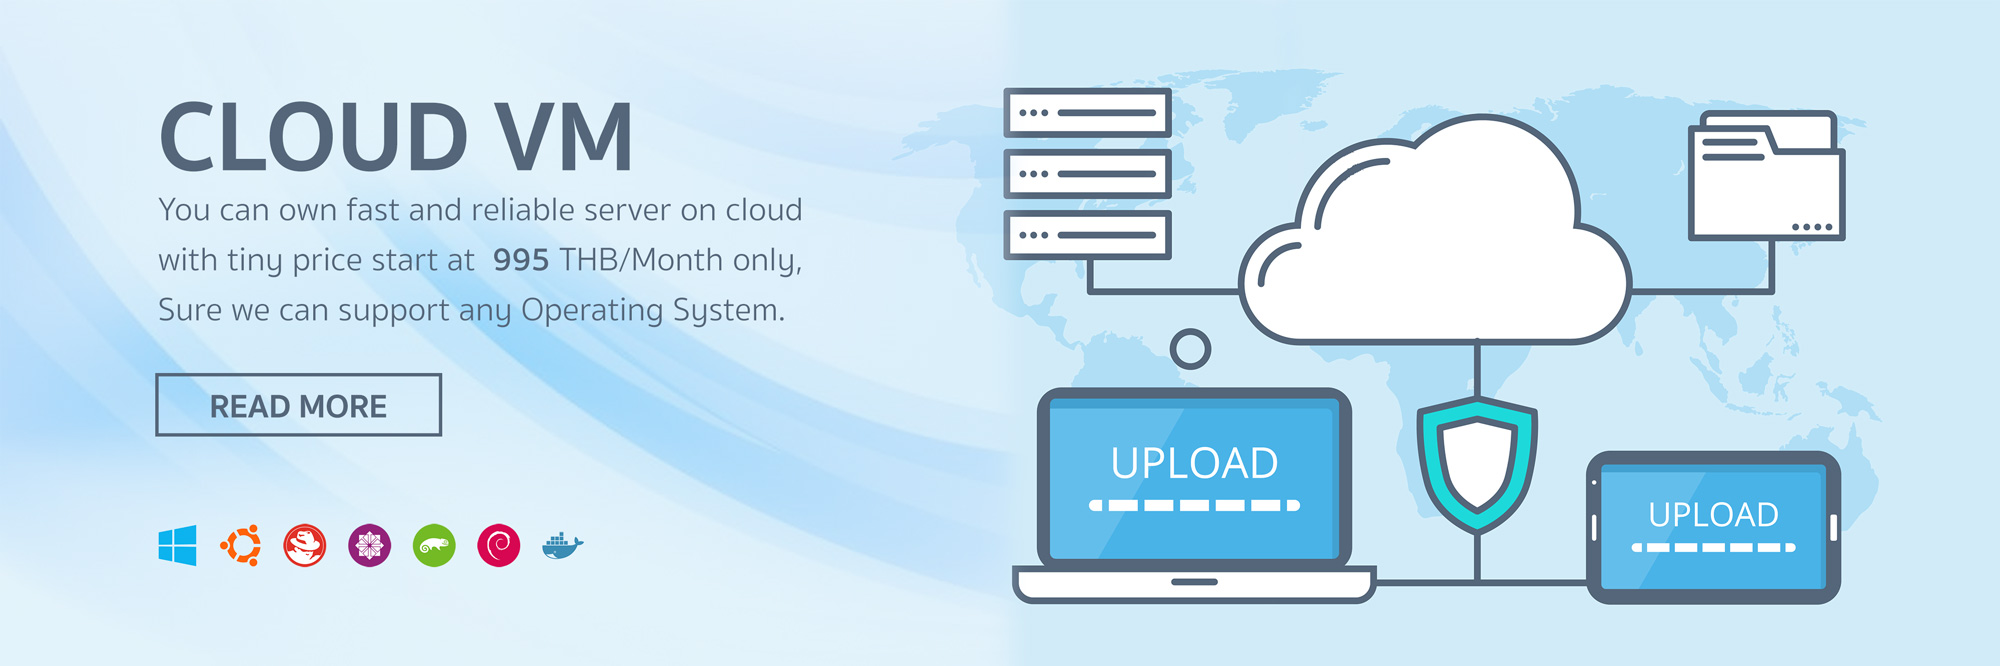 Cloud VM - You can own fast and reliable server on cloud with tiny price start at 995 THB/Month only. Sure we support any Operating System.